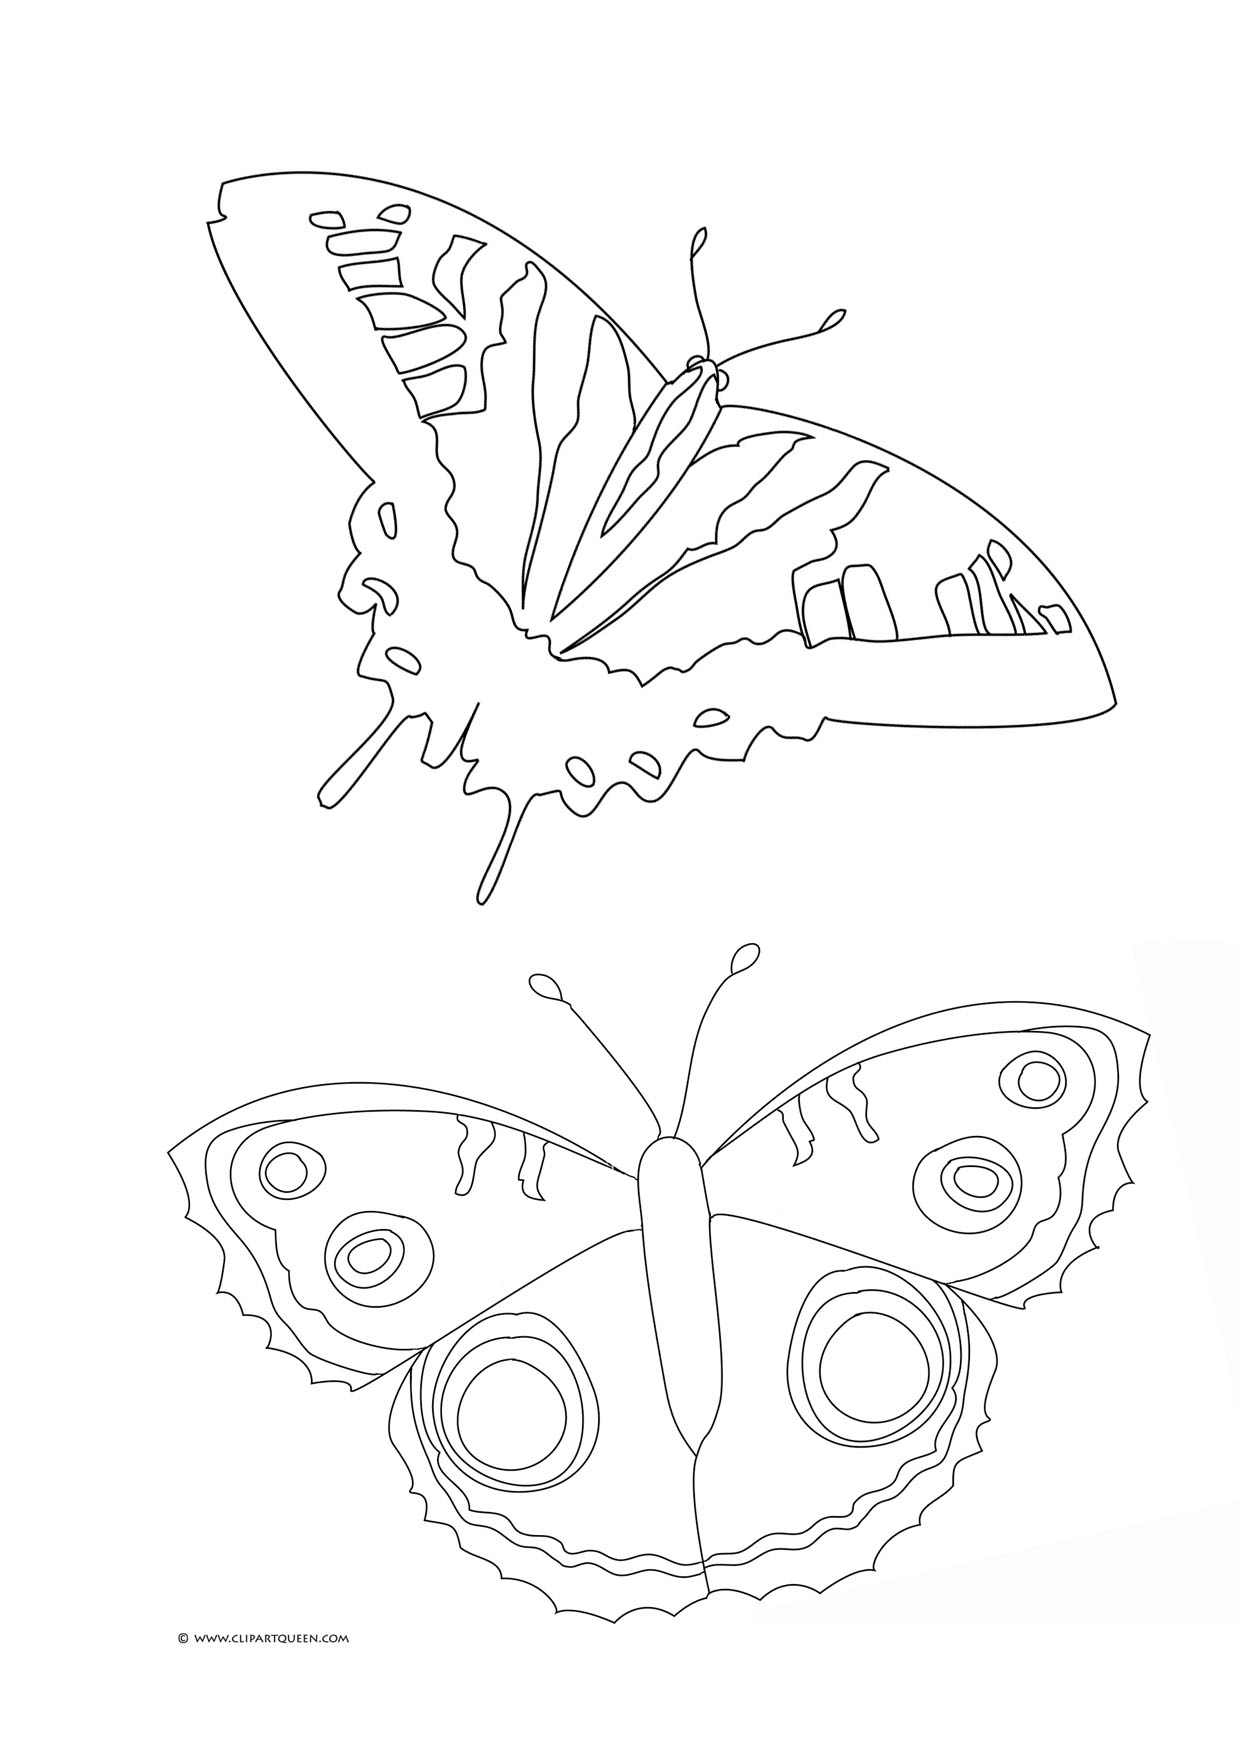 Butterfly stages coloring pages - Coloring Page With Butterflies